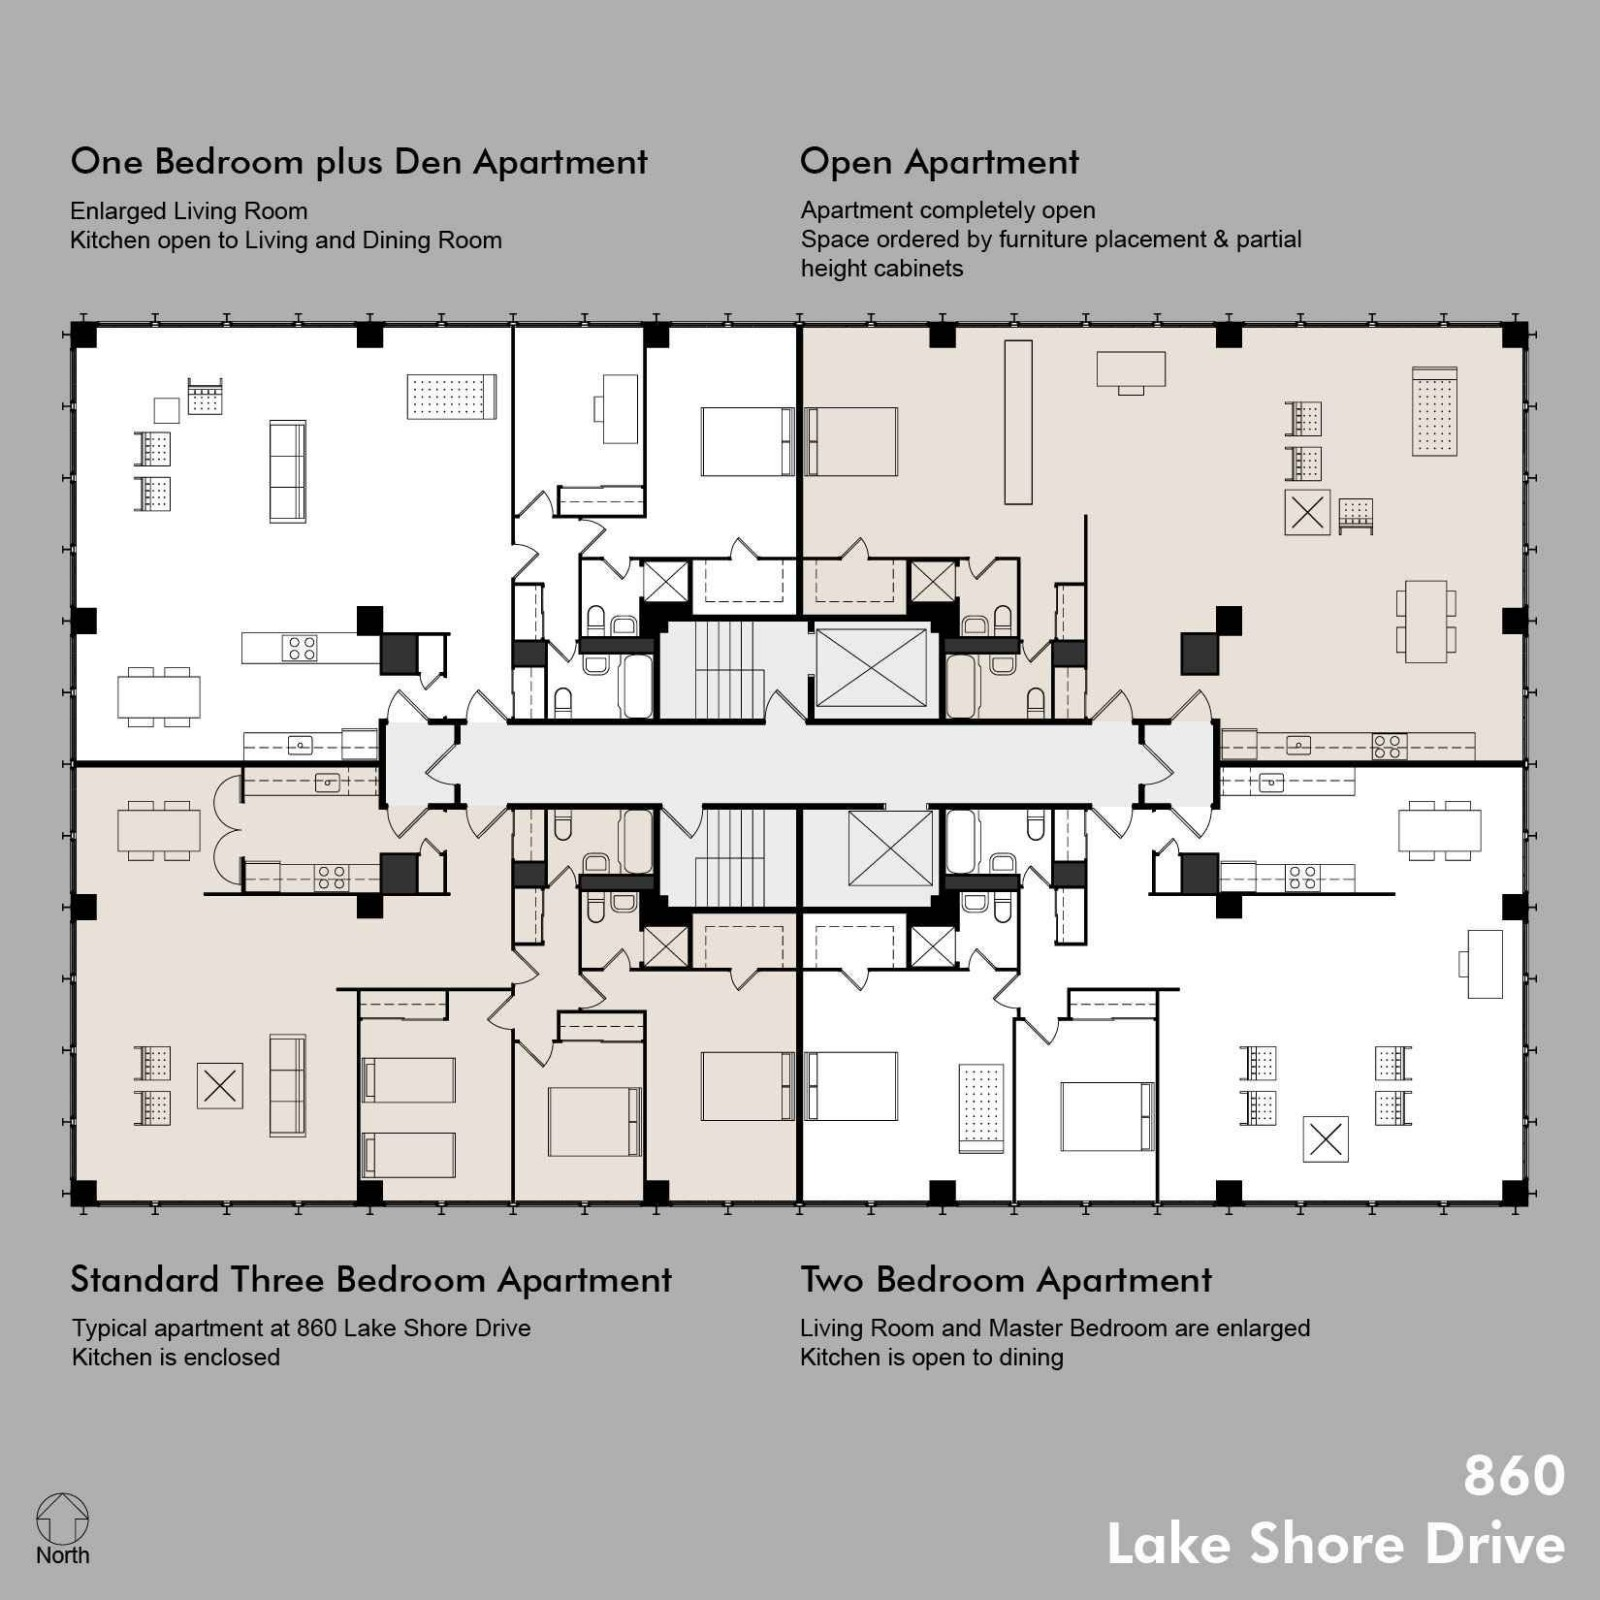 10 Unit Apartment Building Plans and Modern Apartment Design Plans  - Apartment Architecture Design Plans